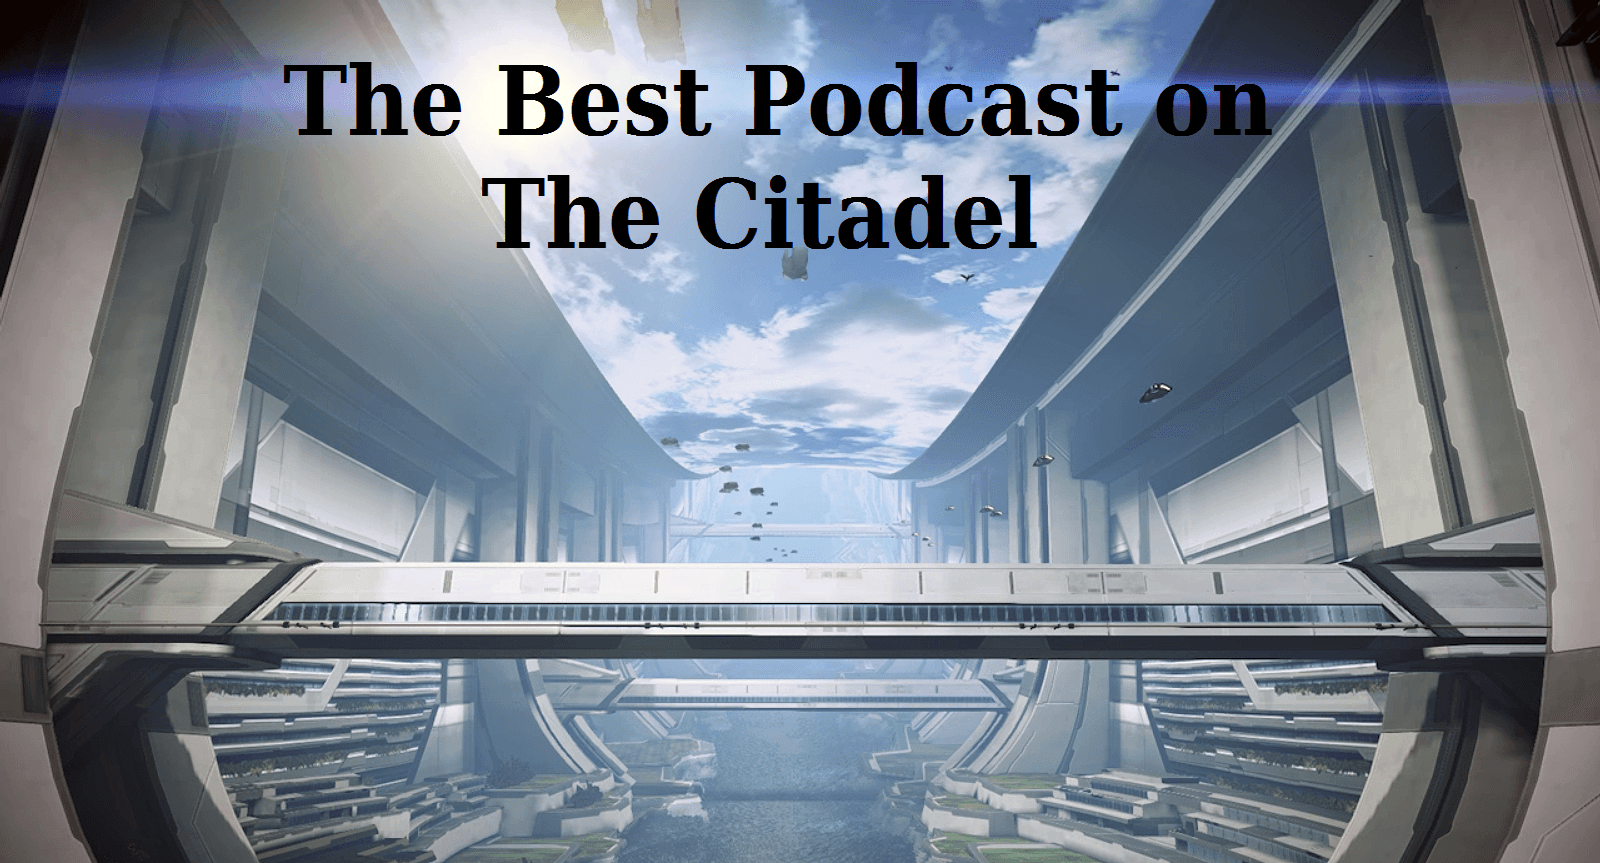 The Best Podcast on the Citadel, Episode 18